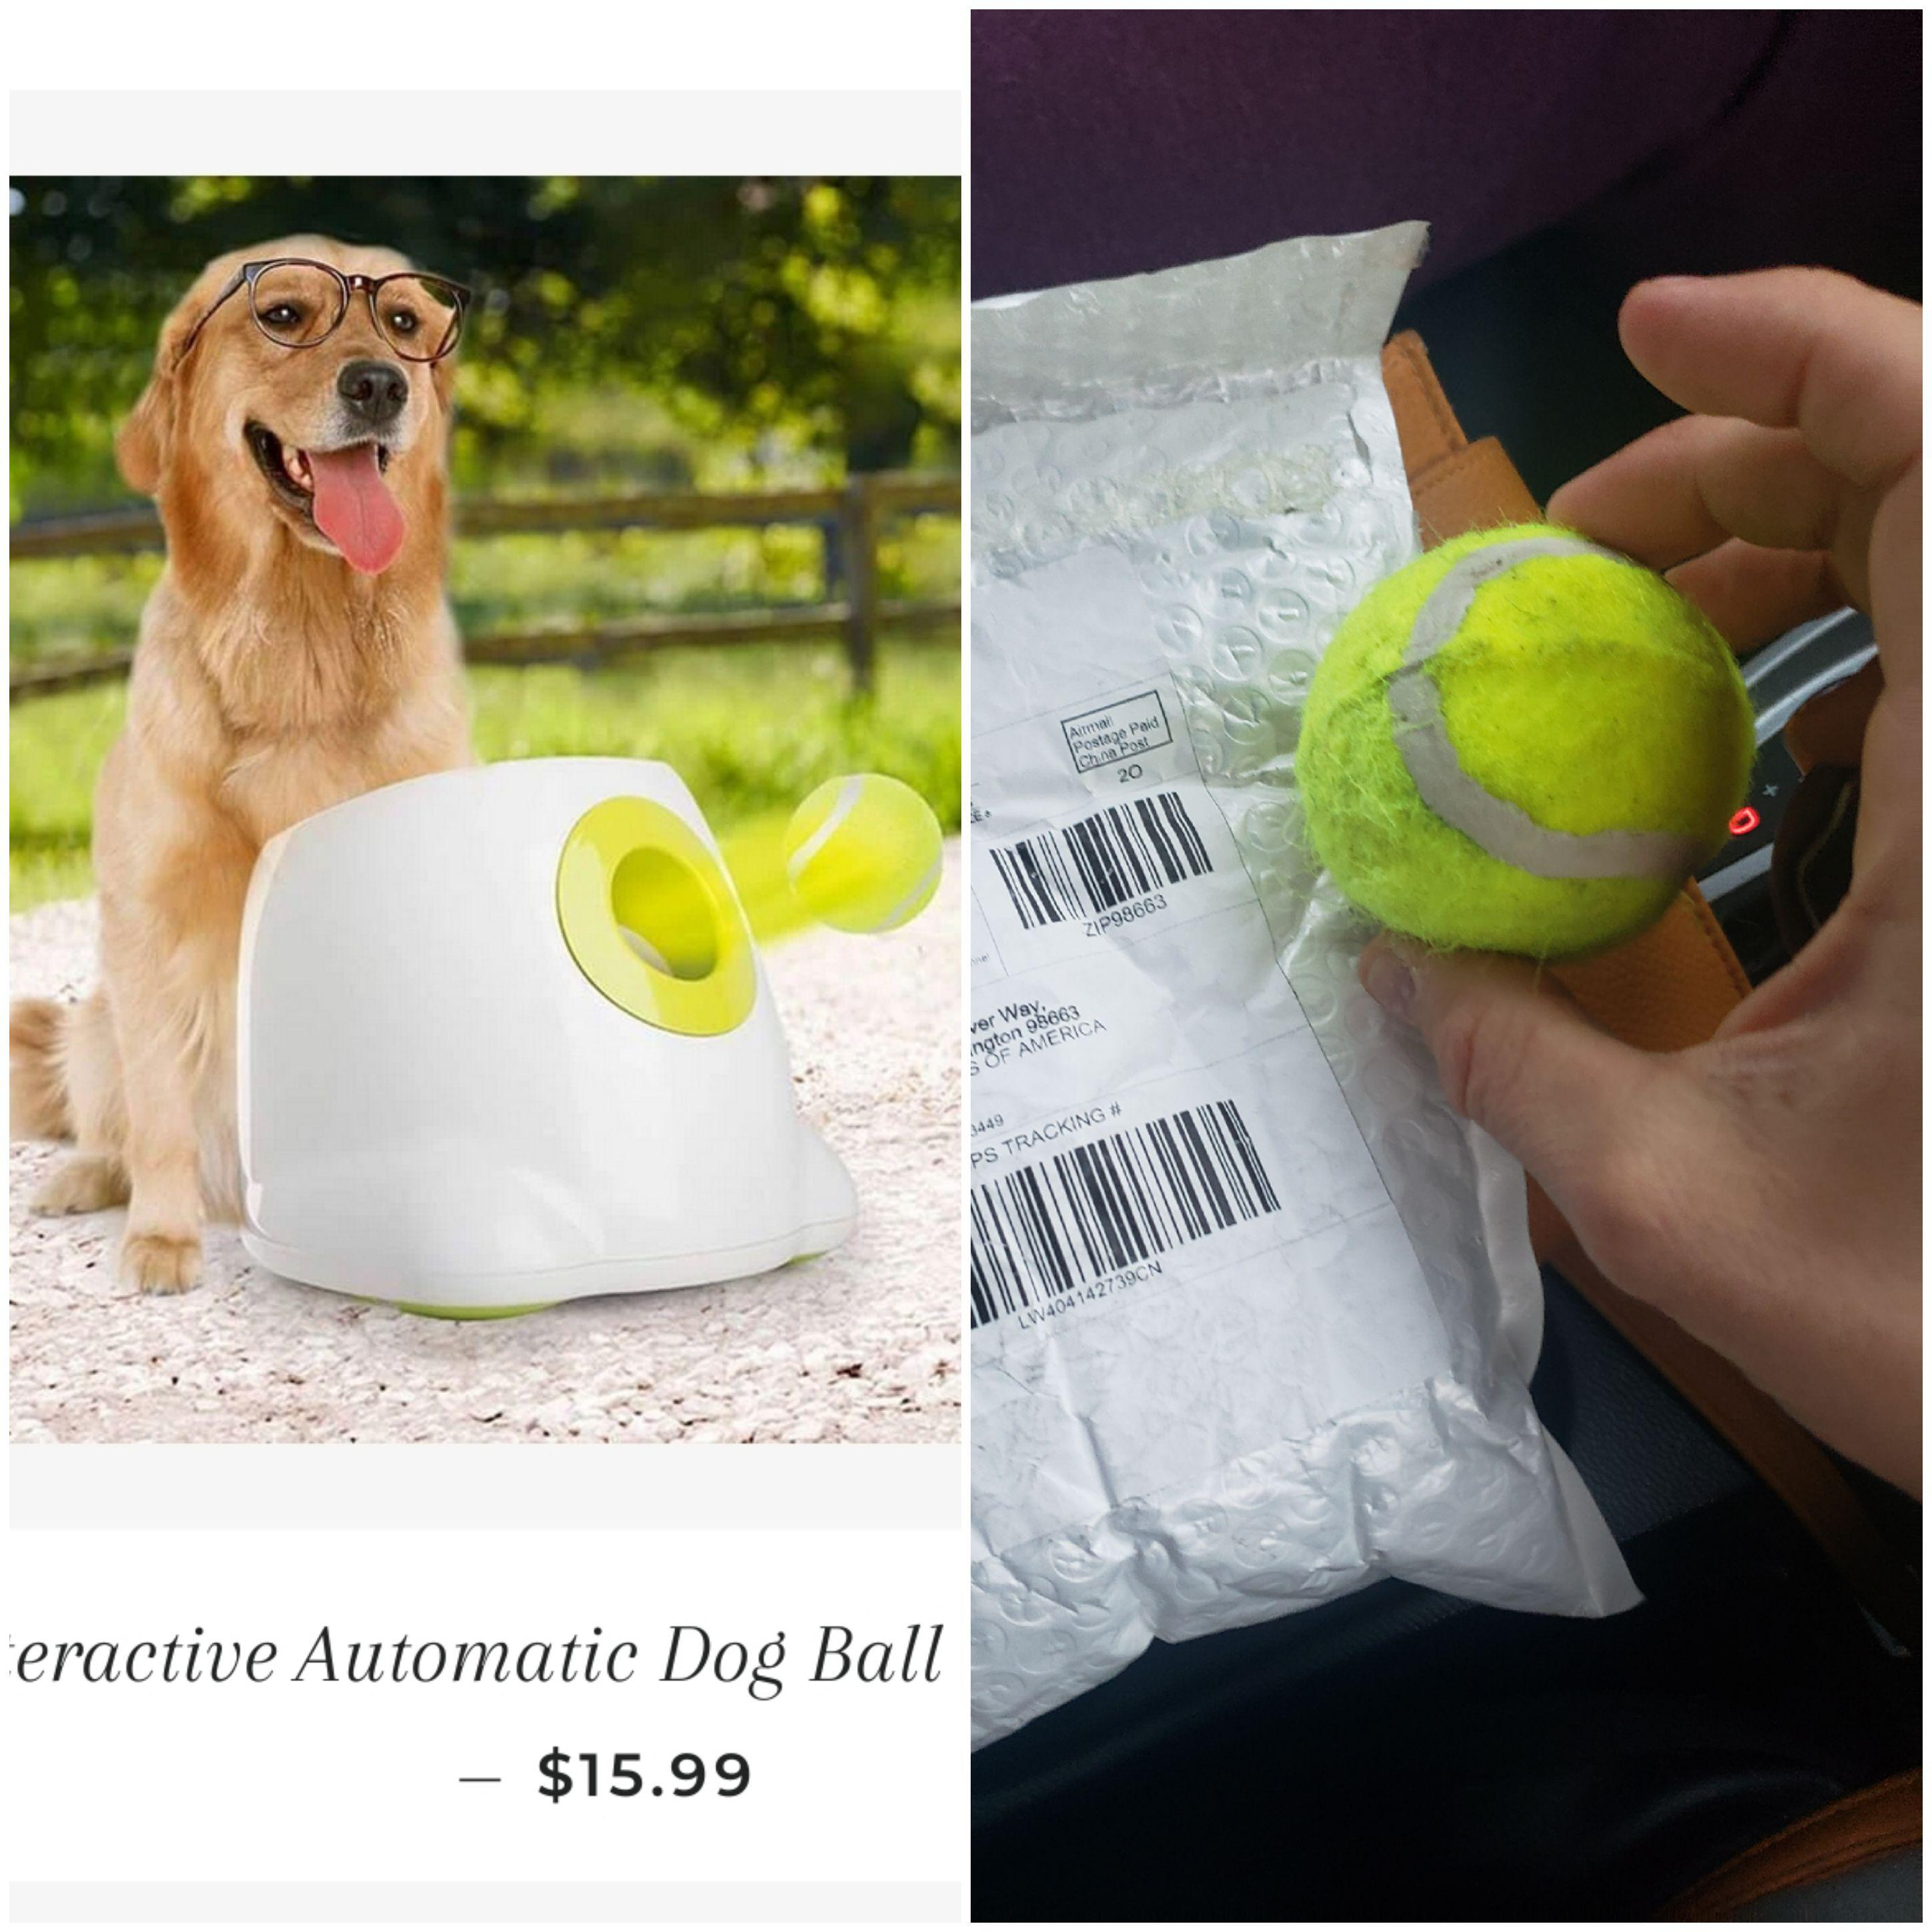 Ordered An Automatic Dog Ball Launcher Got A Solid Foam Tennis Ball Instead R Expectationvsreality Expectation Vs Reality Know Your Meme